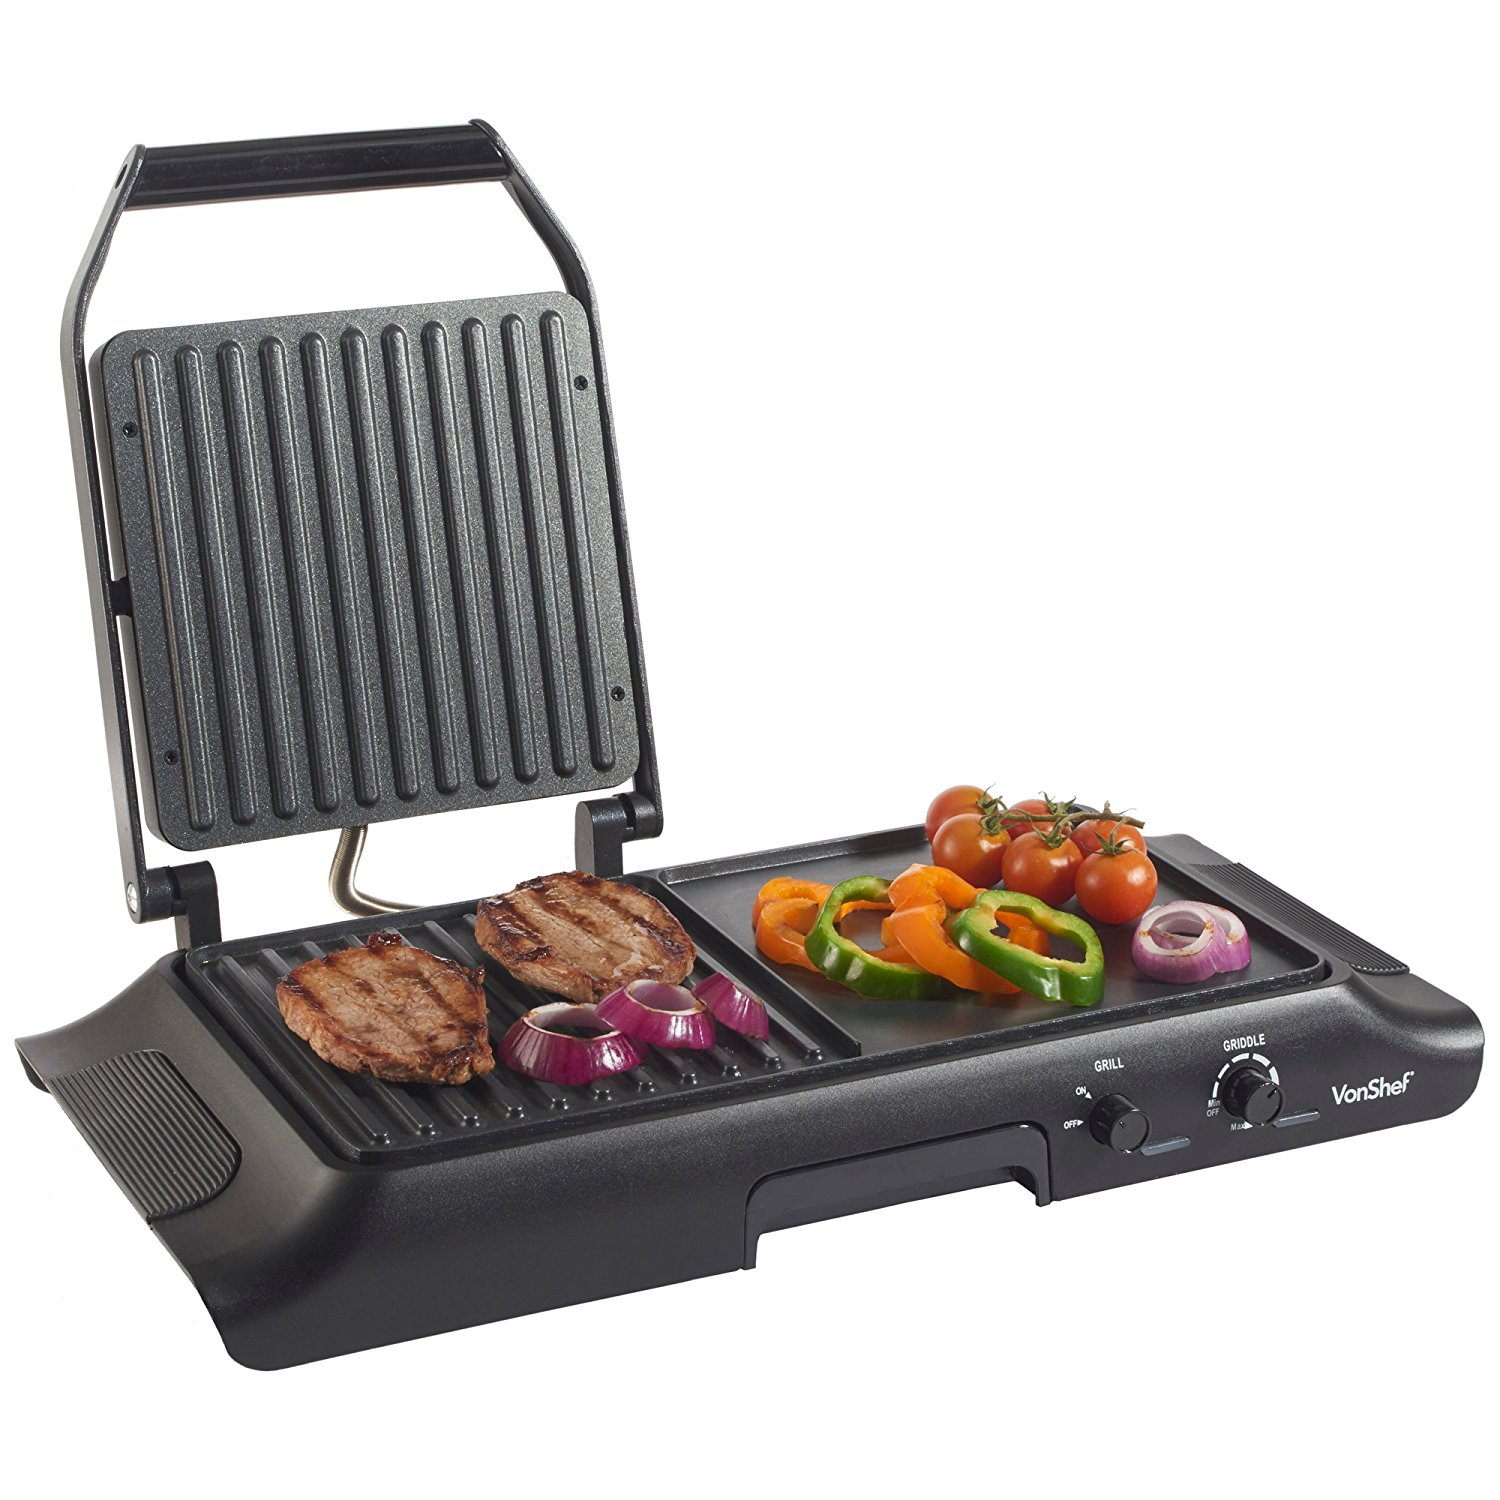 Vonshef 220 Volts 50 Hz Electric Grill, Panini Press and Griddle 13100